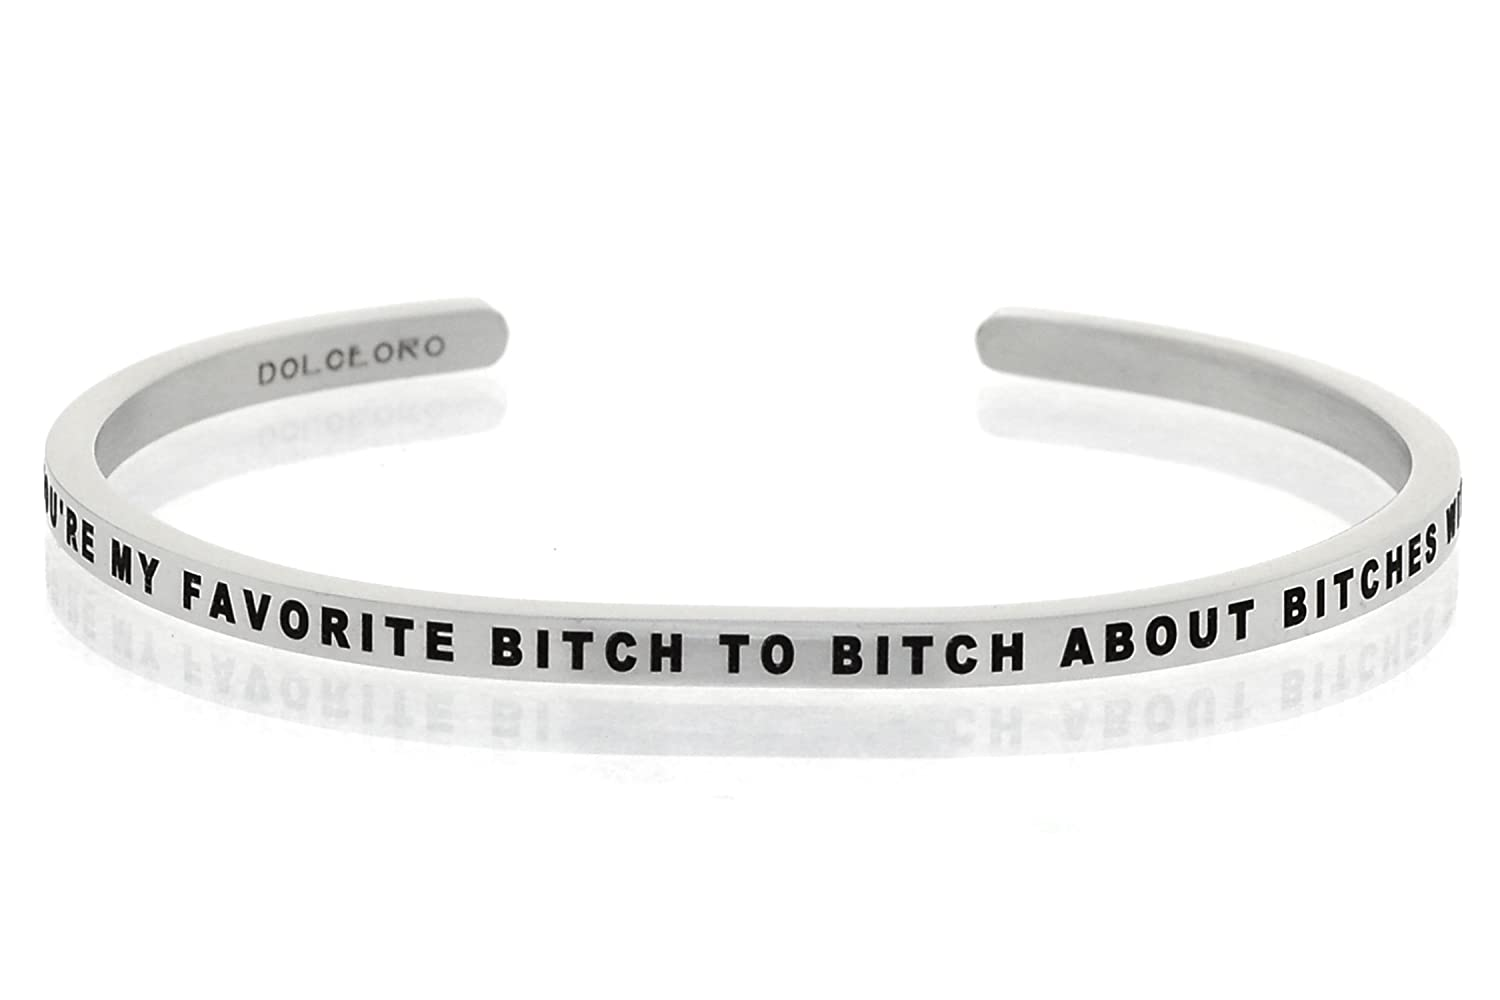 Dolceoro You're My Favorite Bitch to Bitch About Bitches with - Inspirational Mantra Bracelet Jewelry 316L Surgical Steel BAND-BITCHTOBITCH